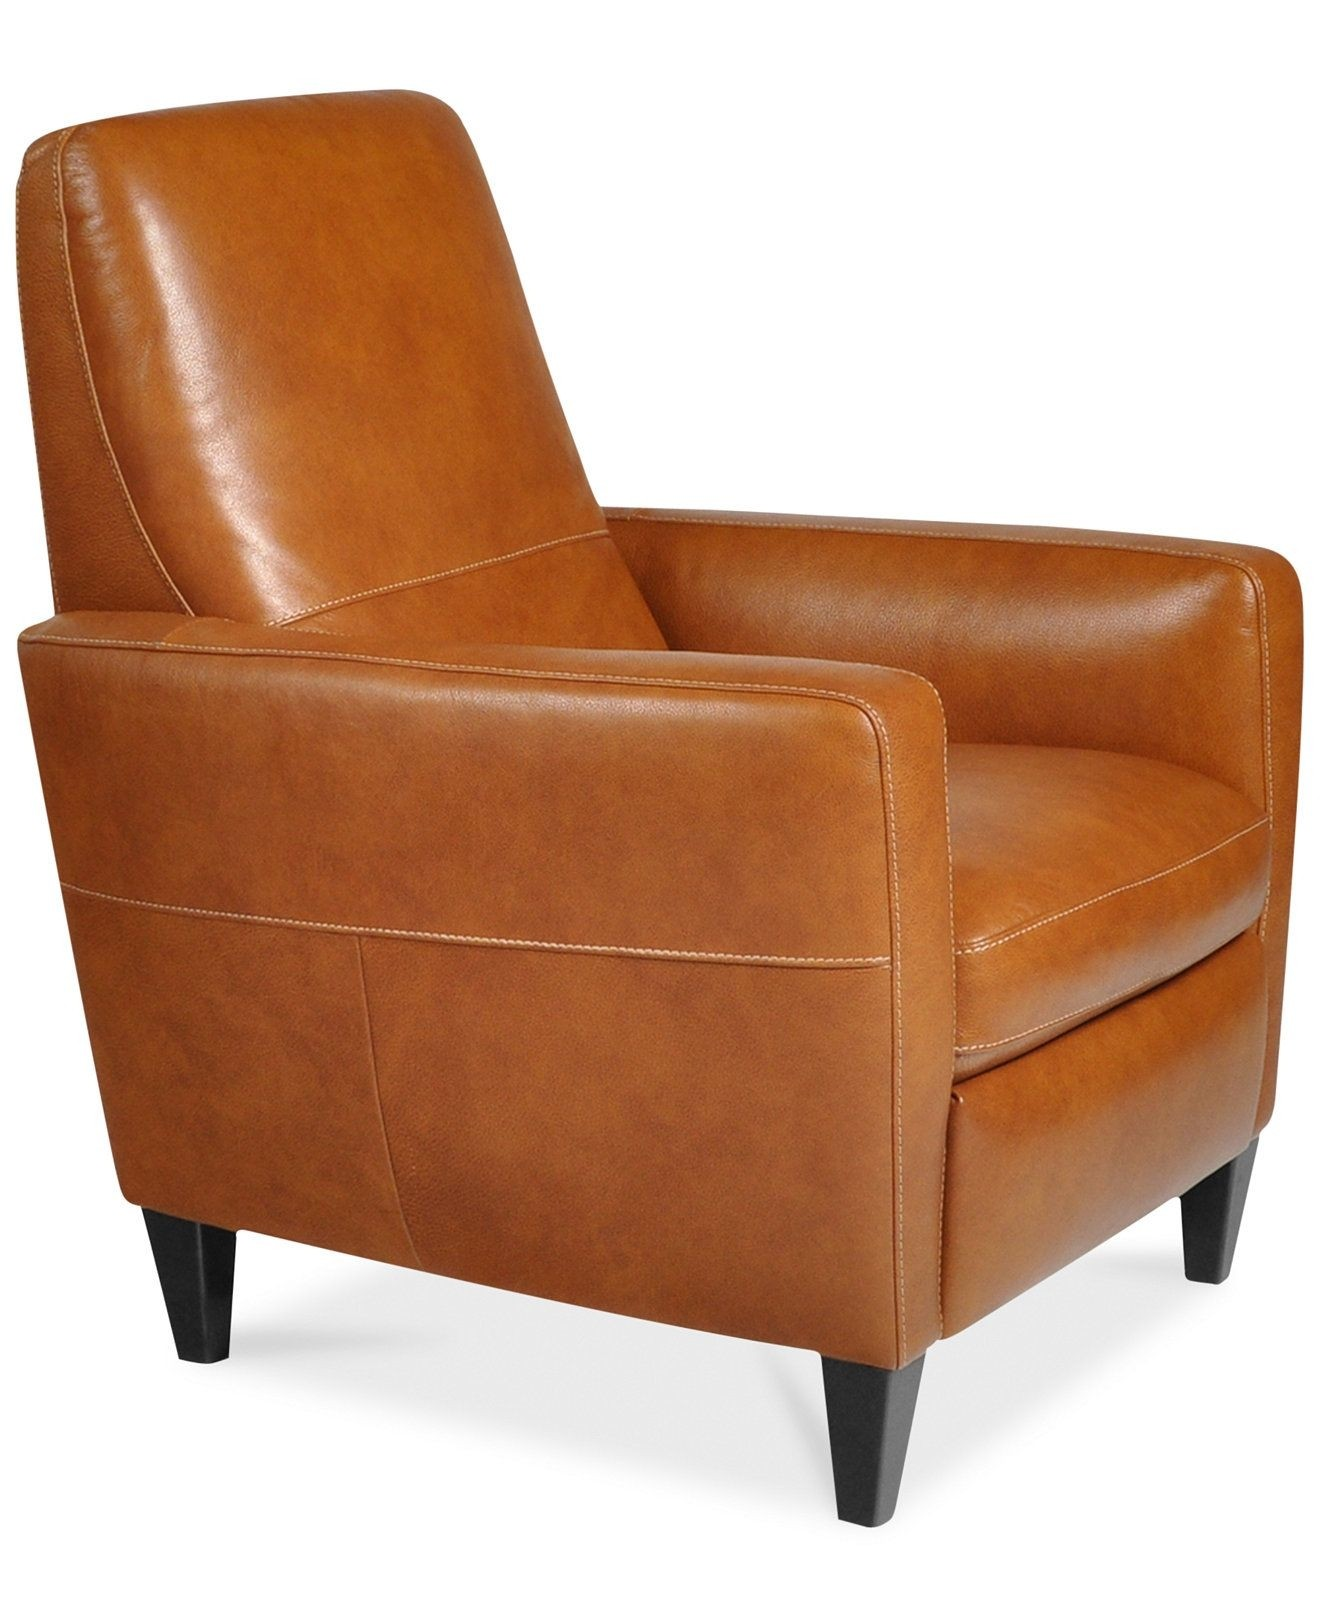 Exceptionnel Recliners Chairs